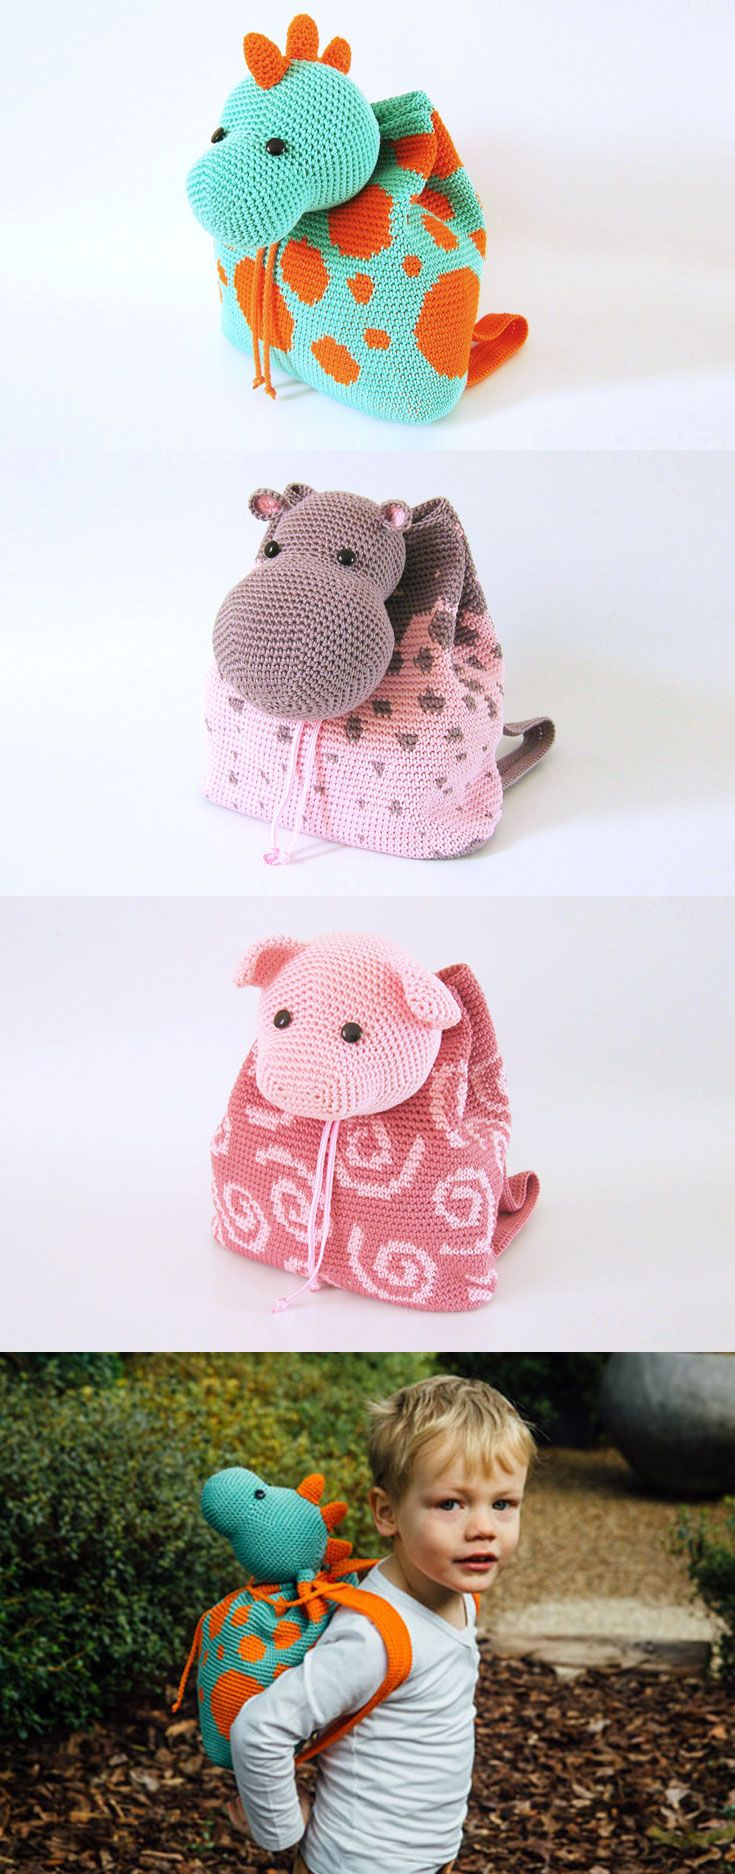 Dino, hippo and pig backpacks, that will quickly become kids' best buddies, for amusing and active outings. A child's life is filled to the brim with different activities and outings, and what better way to keep it all organized than with cute and soft amigurumi bags?